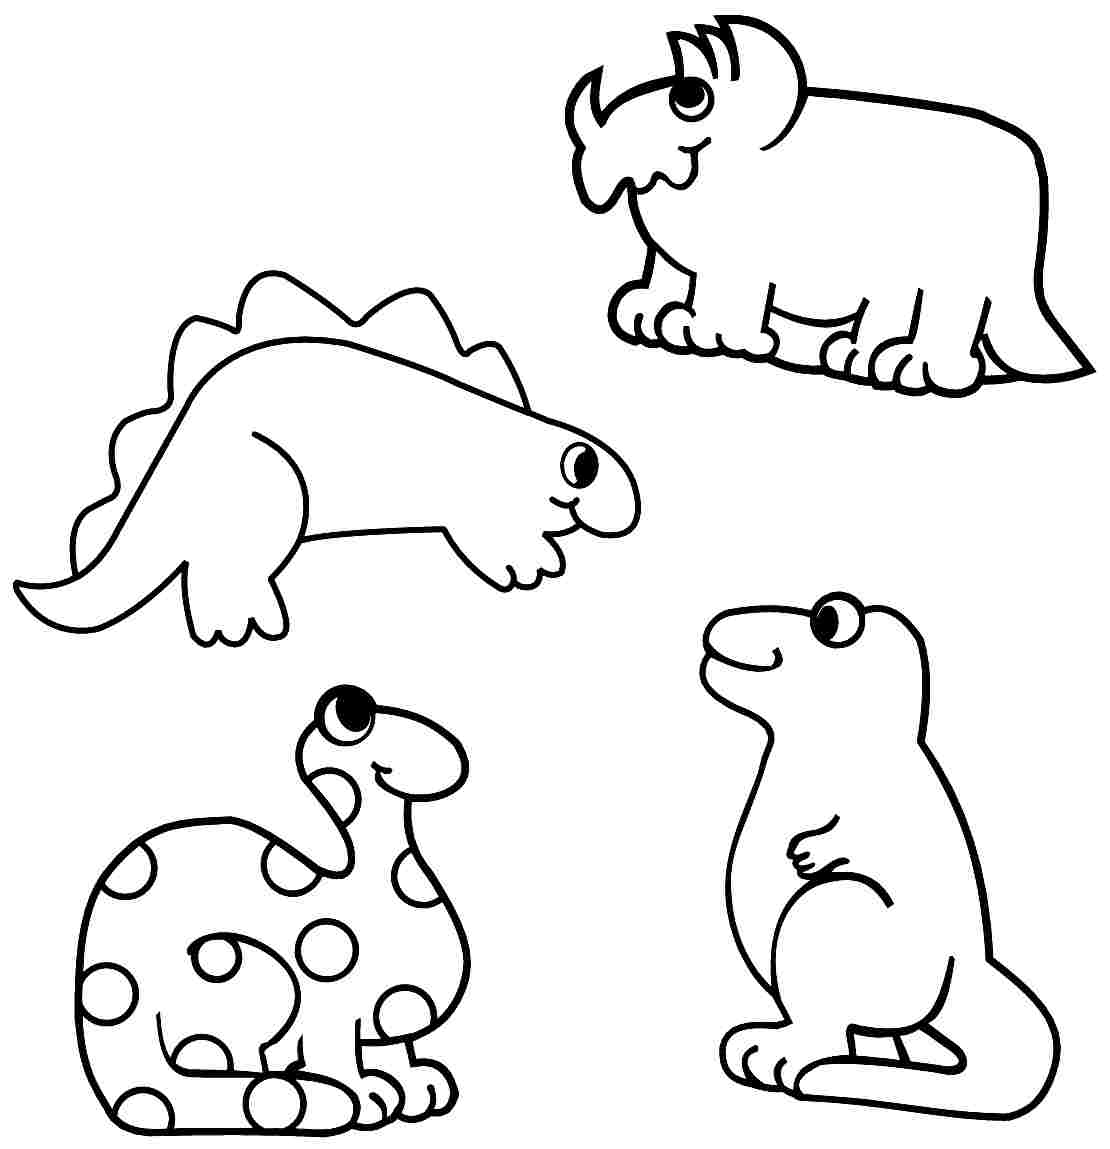 1110x1149 Dinosaur Coloring Pages Preschool Printable Dinosaur Coloring